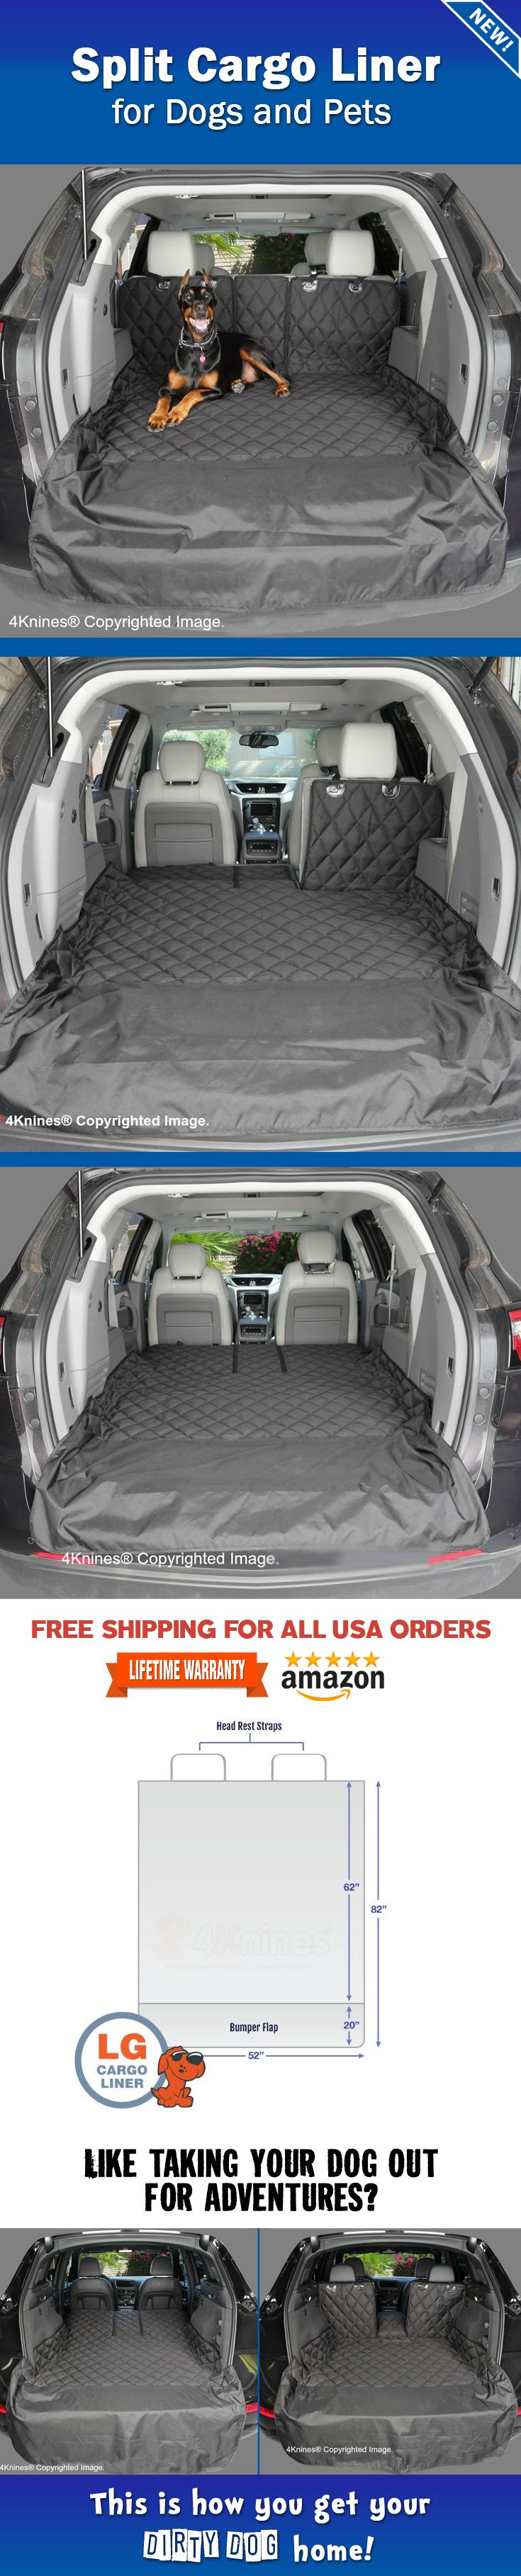 Like taking your dog out for adventures? This is how you get your dirty pup home. http://4knines.com/pages/4knines-split-cargo-liner Available at 4Knines.com or on Amazon. This patent pending design allows you to use a 60/40 or 50/50 rear split seat if you wish to put part of the seat up while your pup rides in the cargo area. 4Knines covers are built to last and come with a Lifetime Warranty.